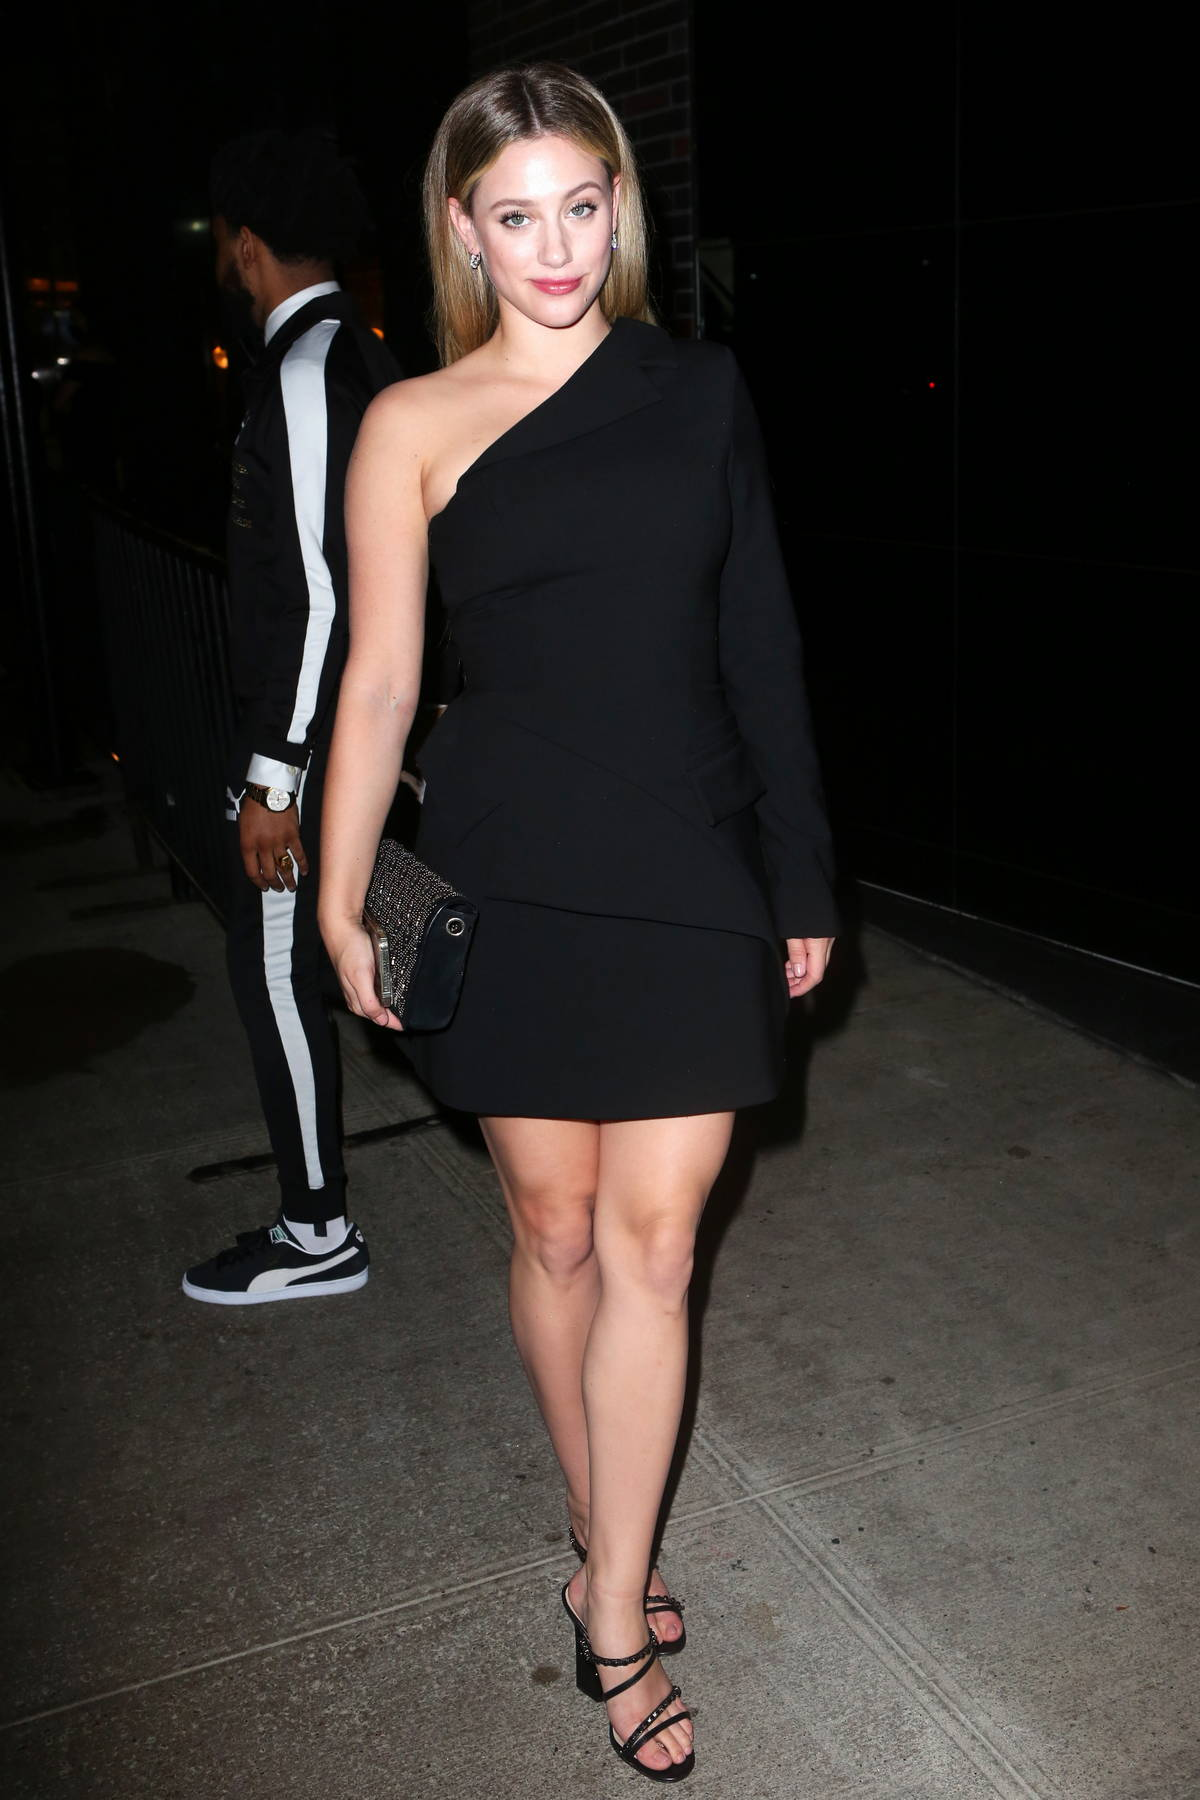 Lili Reinhart looks stylish in black while attending a Met Gala after-party in New York City